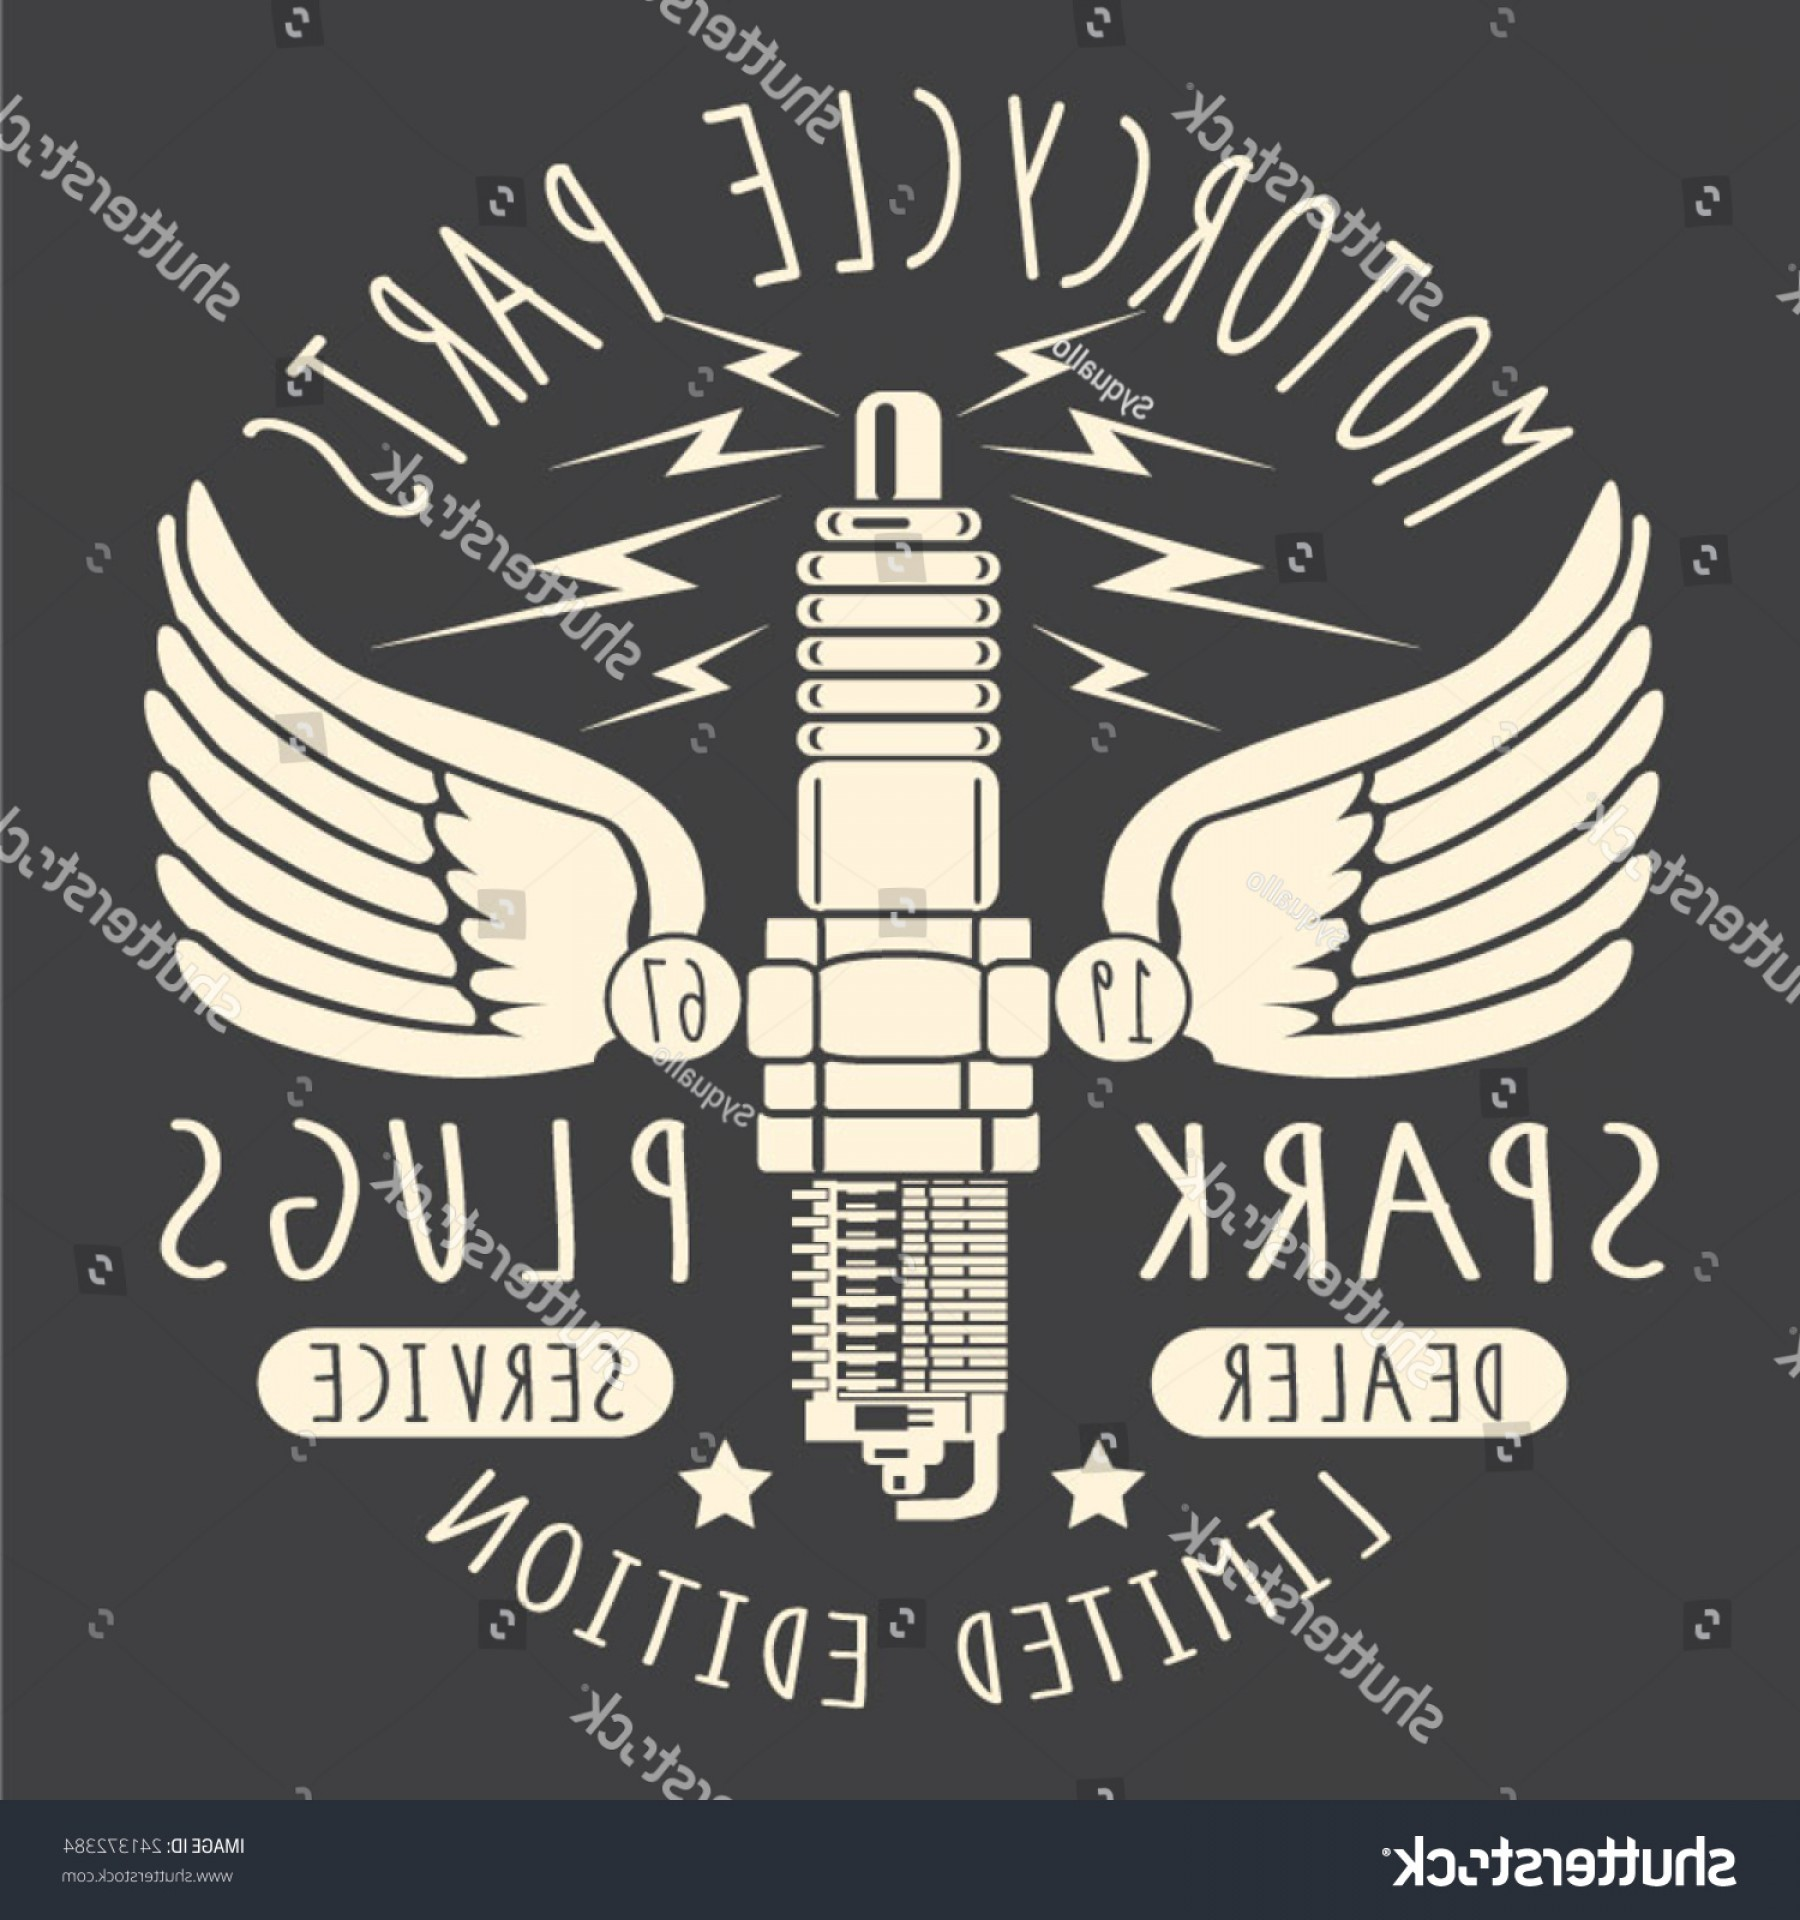 Motor Vector Graphics: Vintage Motor Service Typography Tshirt Graphics